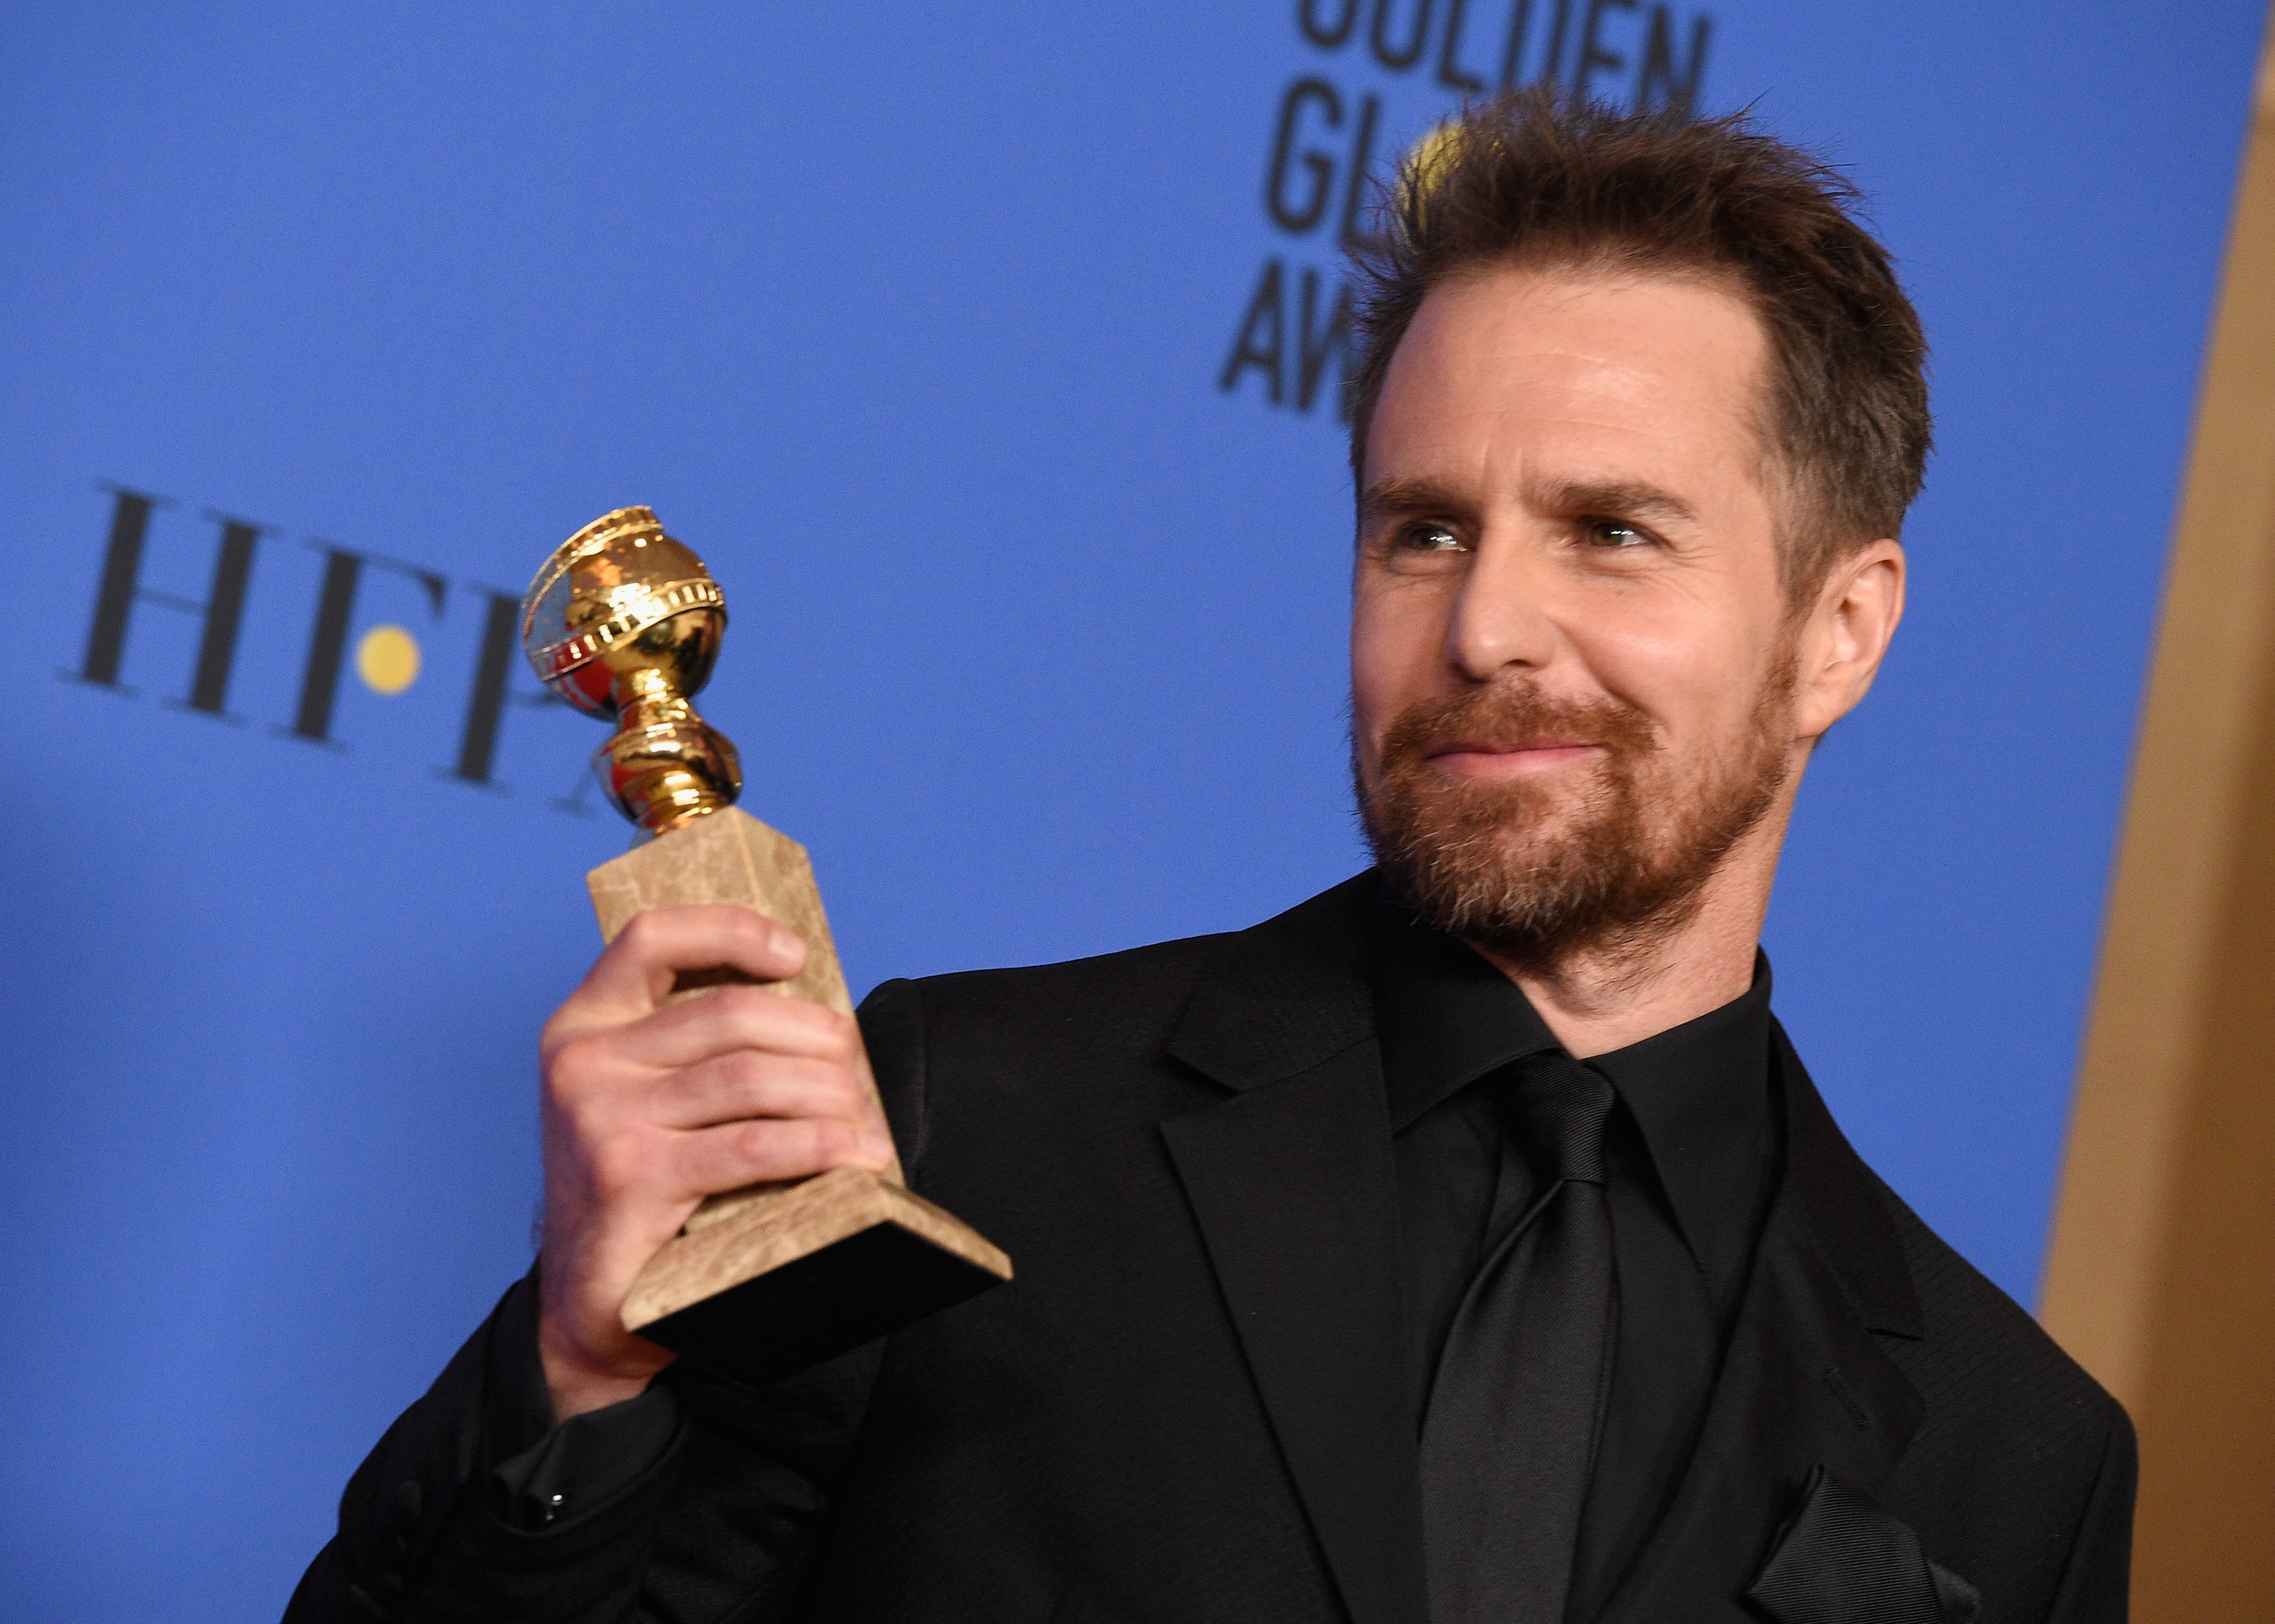 Sam Rockwell poses with best supporting actor award for 'Three Billboards Outside Ebbing, Missouri' at the 75th Annual Golden Globe Awards on January 7, 2018.